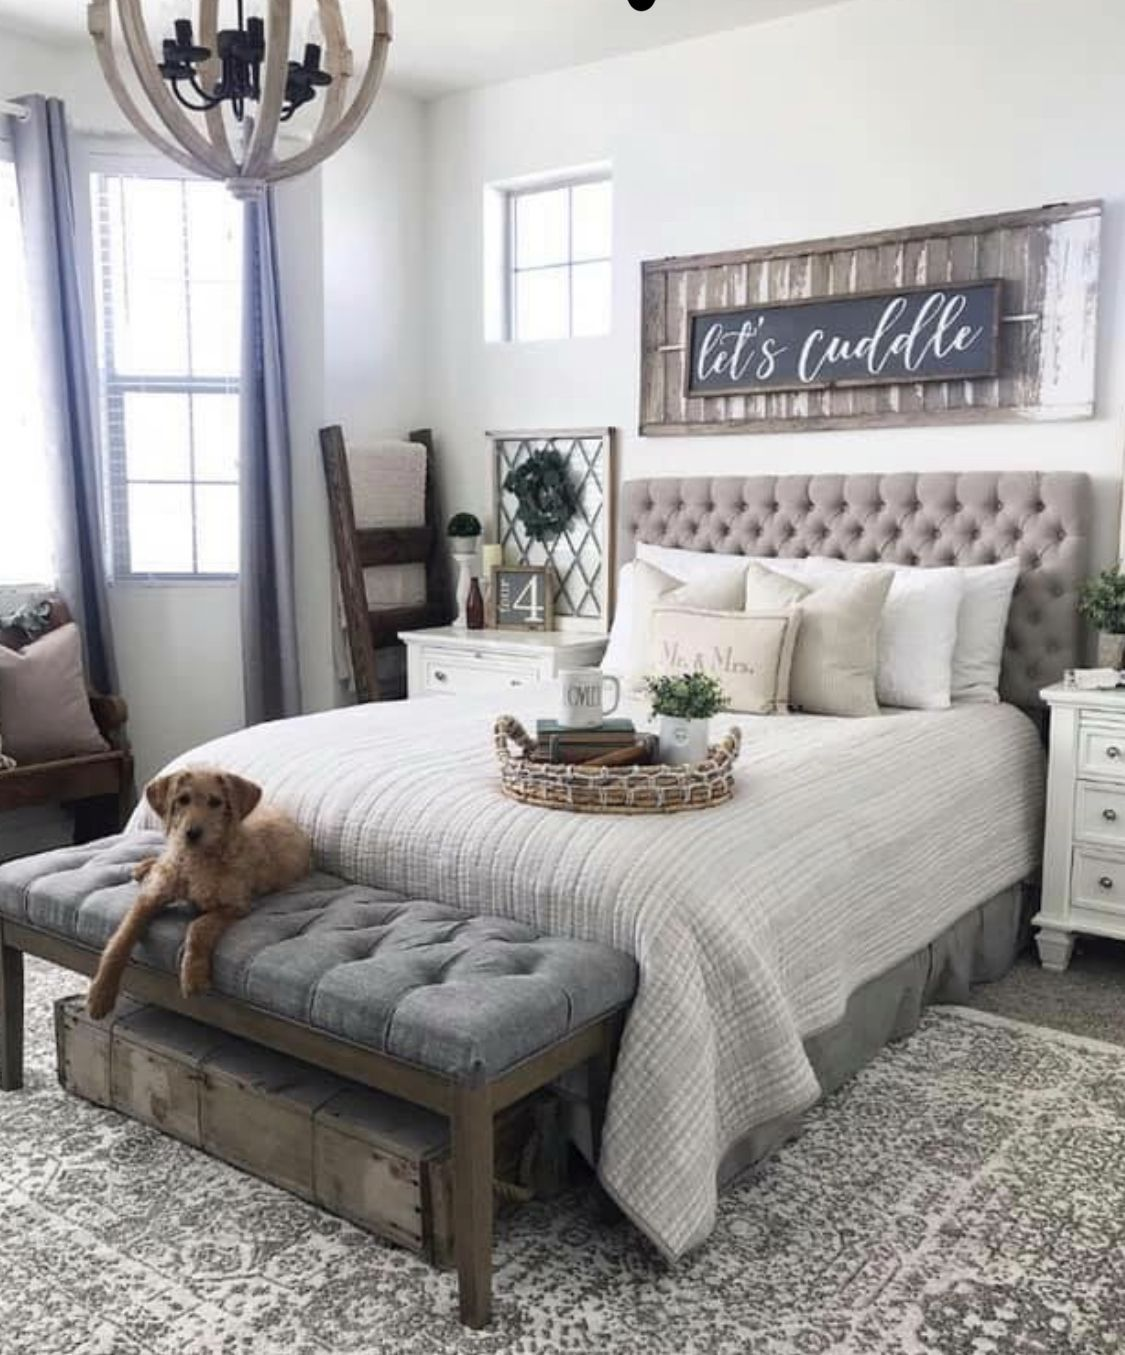 40 Gorgeous Small Master Bedroom Ideas In 2020 Decor Inspirations Rustic Master Bedroom Master Bedrooms Decor Modern Farmhouse Bedroom